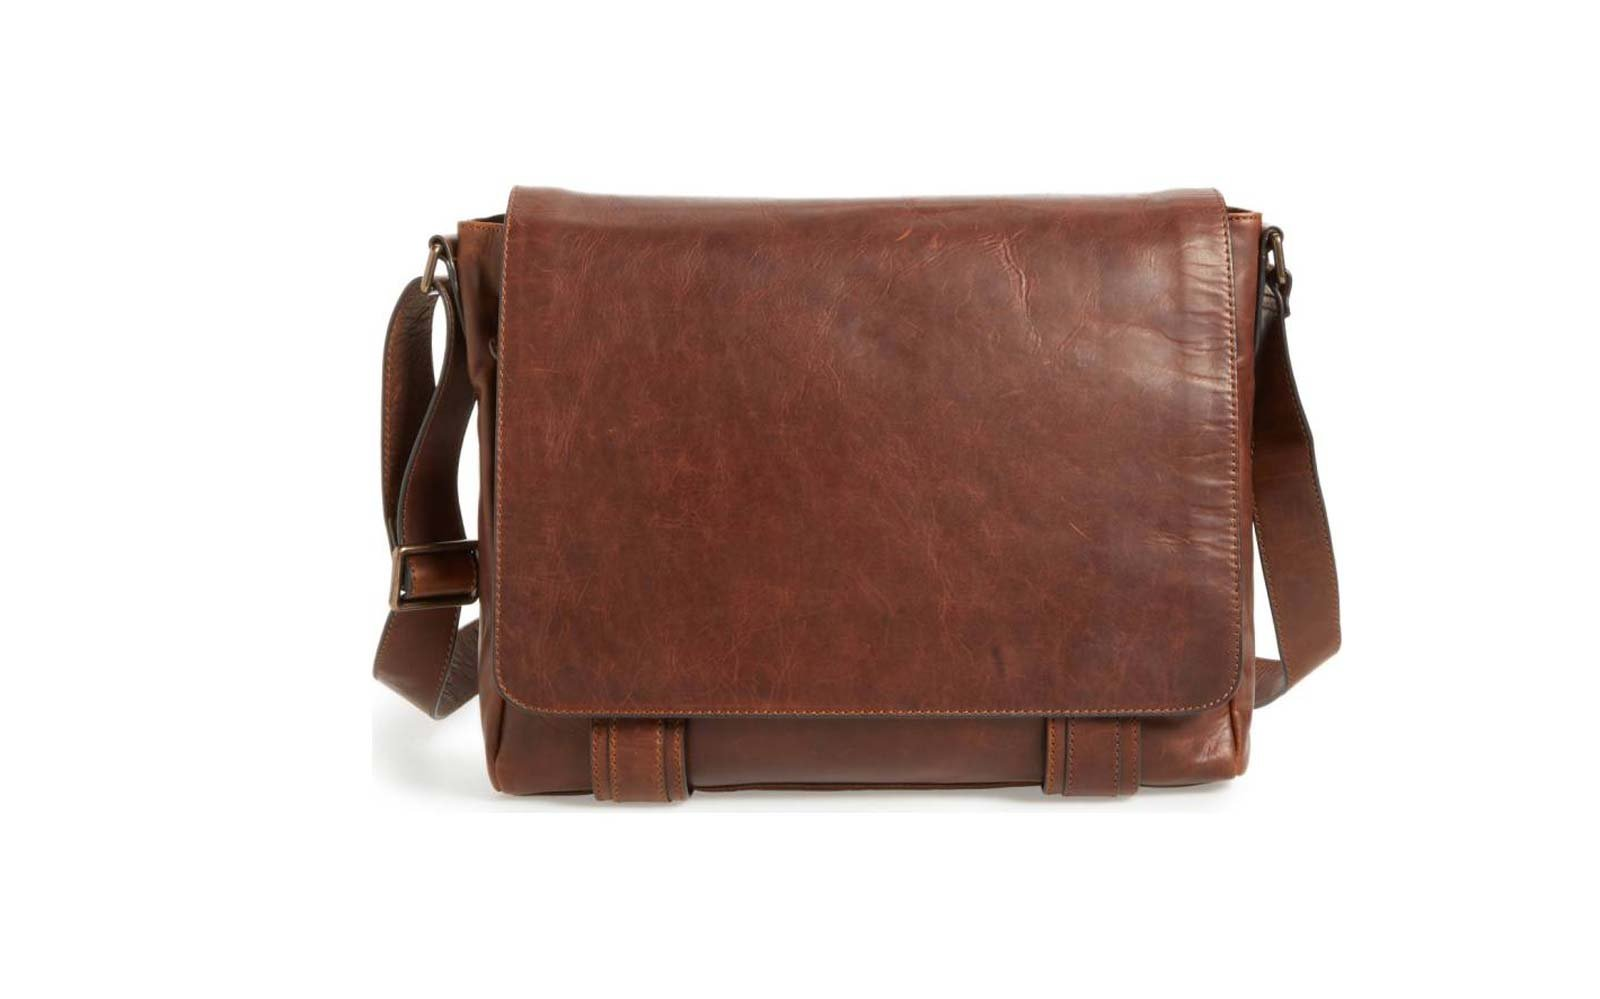 d5355a543de0 The 9 Best Leather Messenger Bags for Men